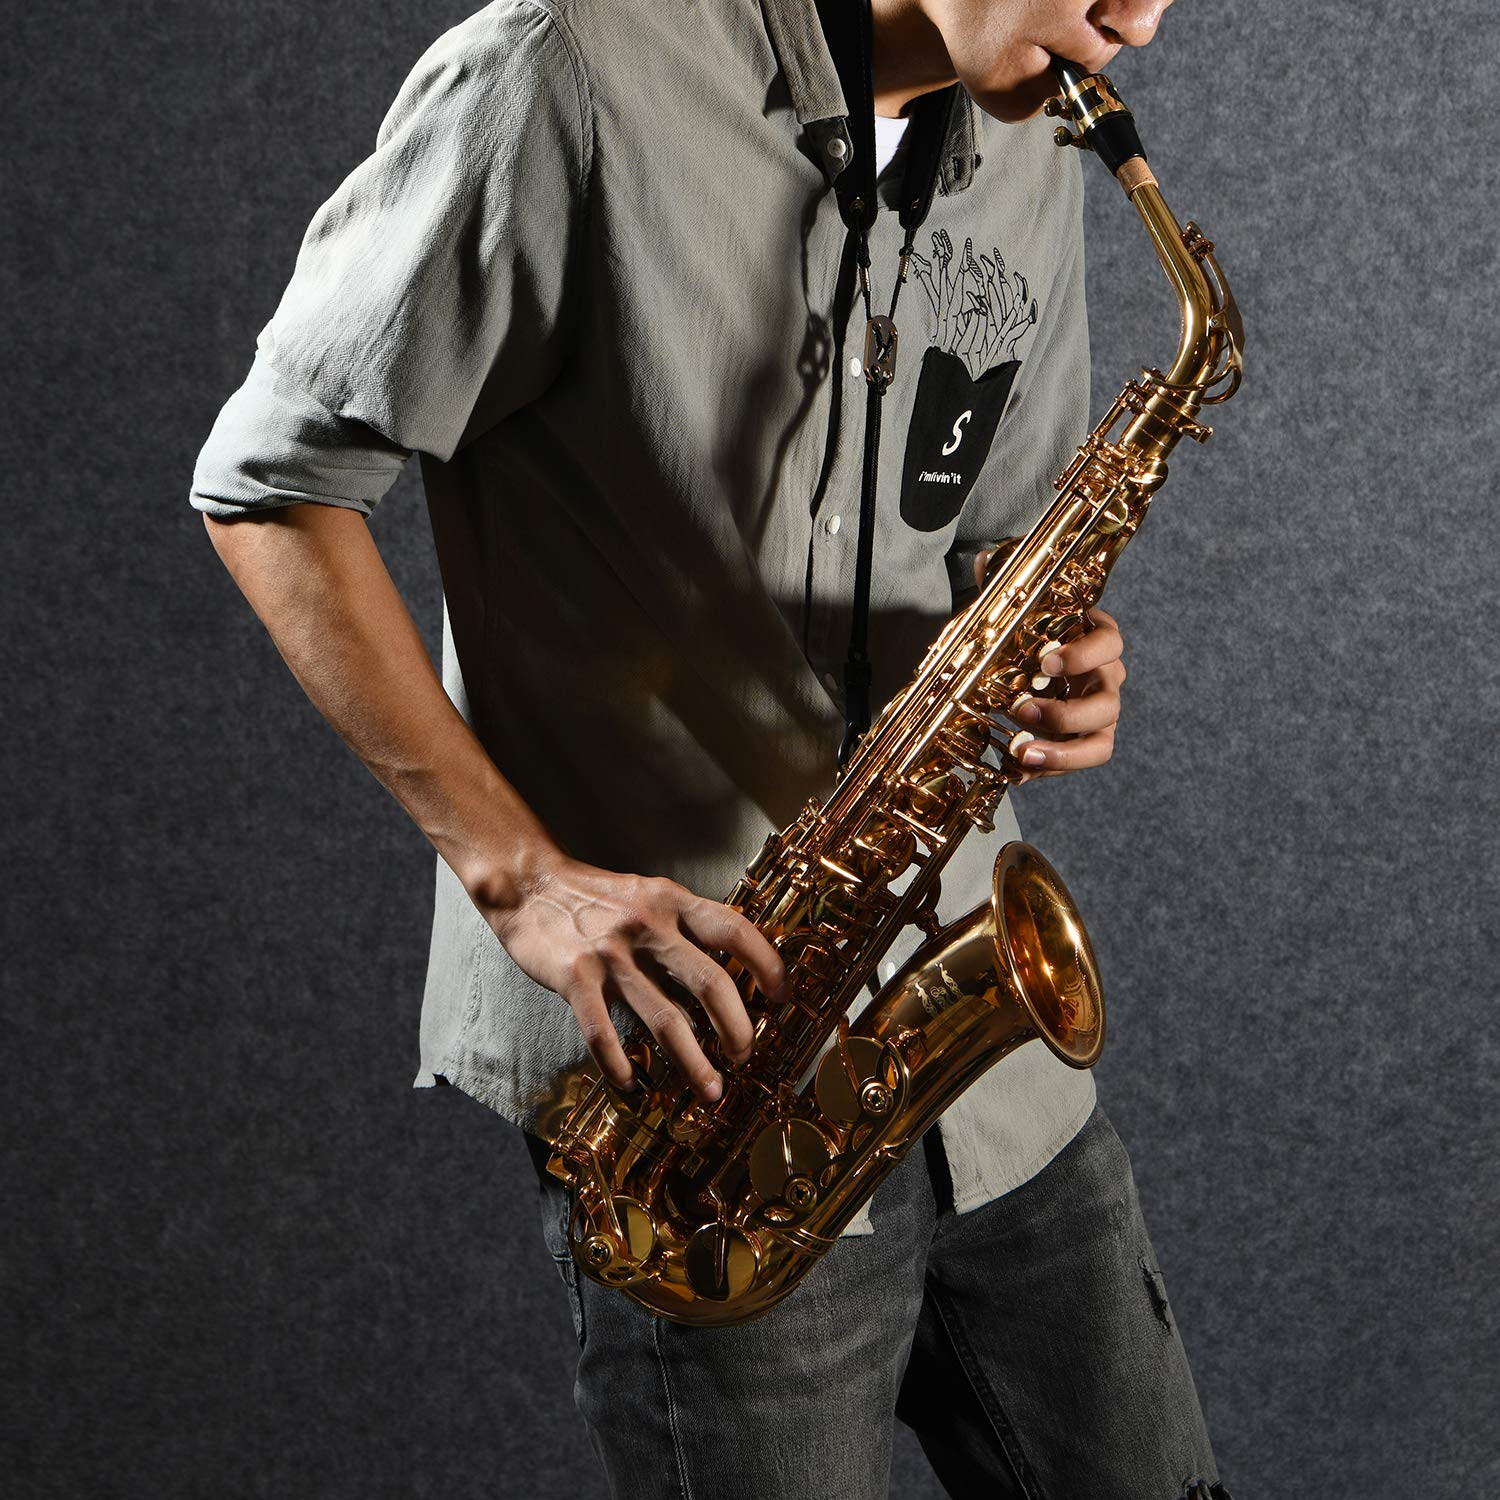 Eastar AS-Ⅱ Student Alto Saxophone E Flat Gold Lacquer Alto Sax Full Kit With Carrying Sax Case Mouthpiece Straps Reeds Stand Cork Grease by Eastar (Image #7)